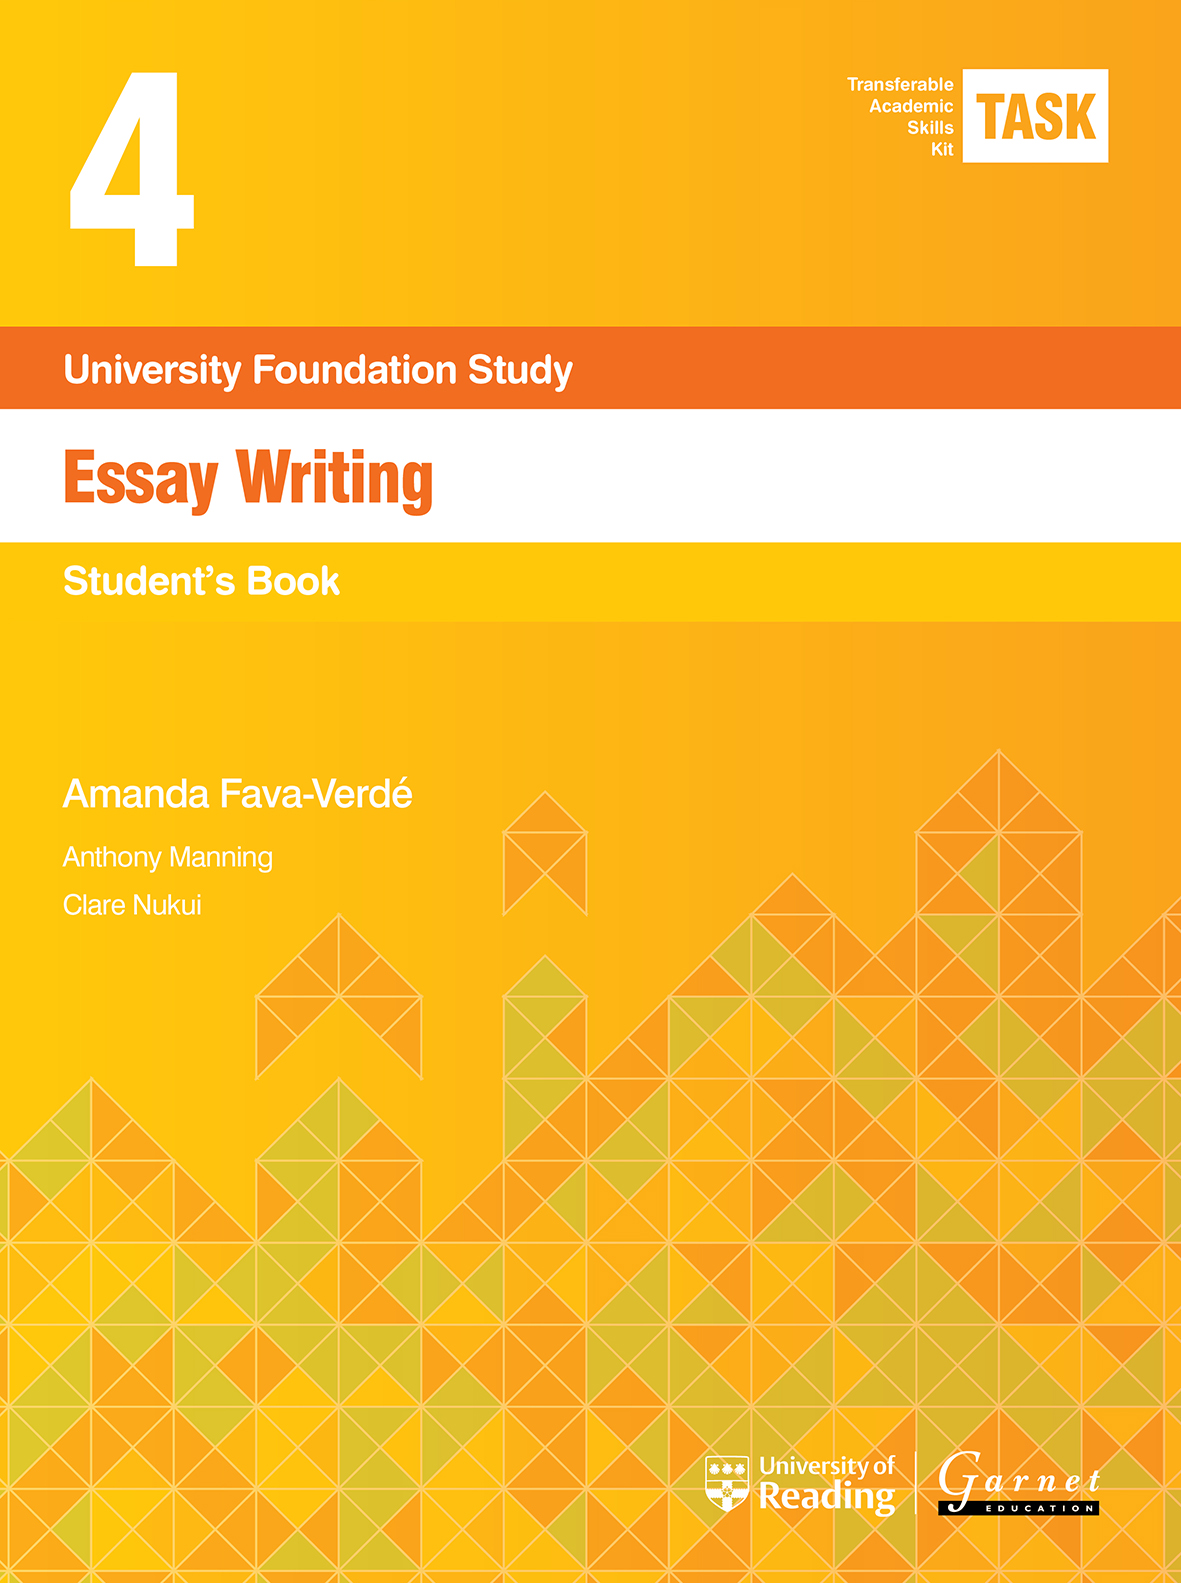 task essay writing student s book garnet education task 4 essay writing 2015 student s book